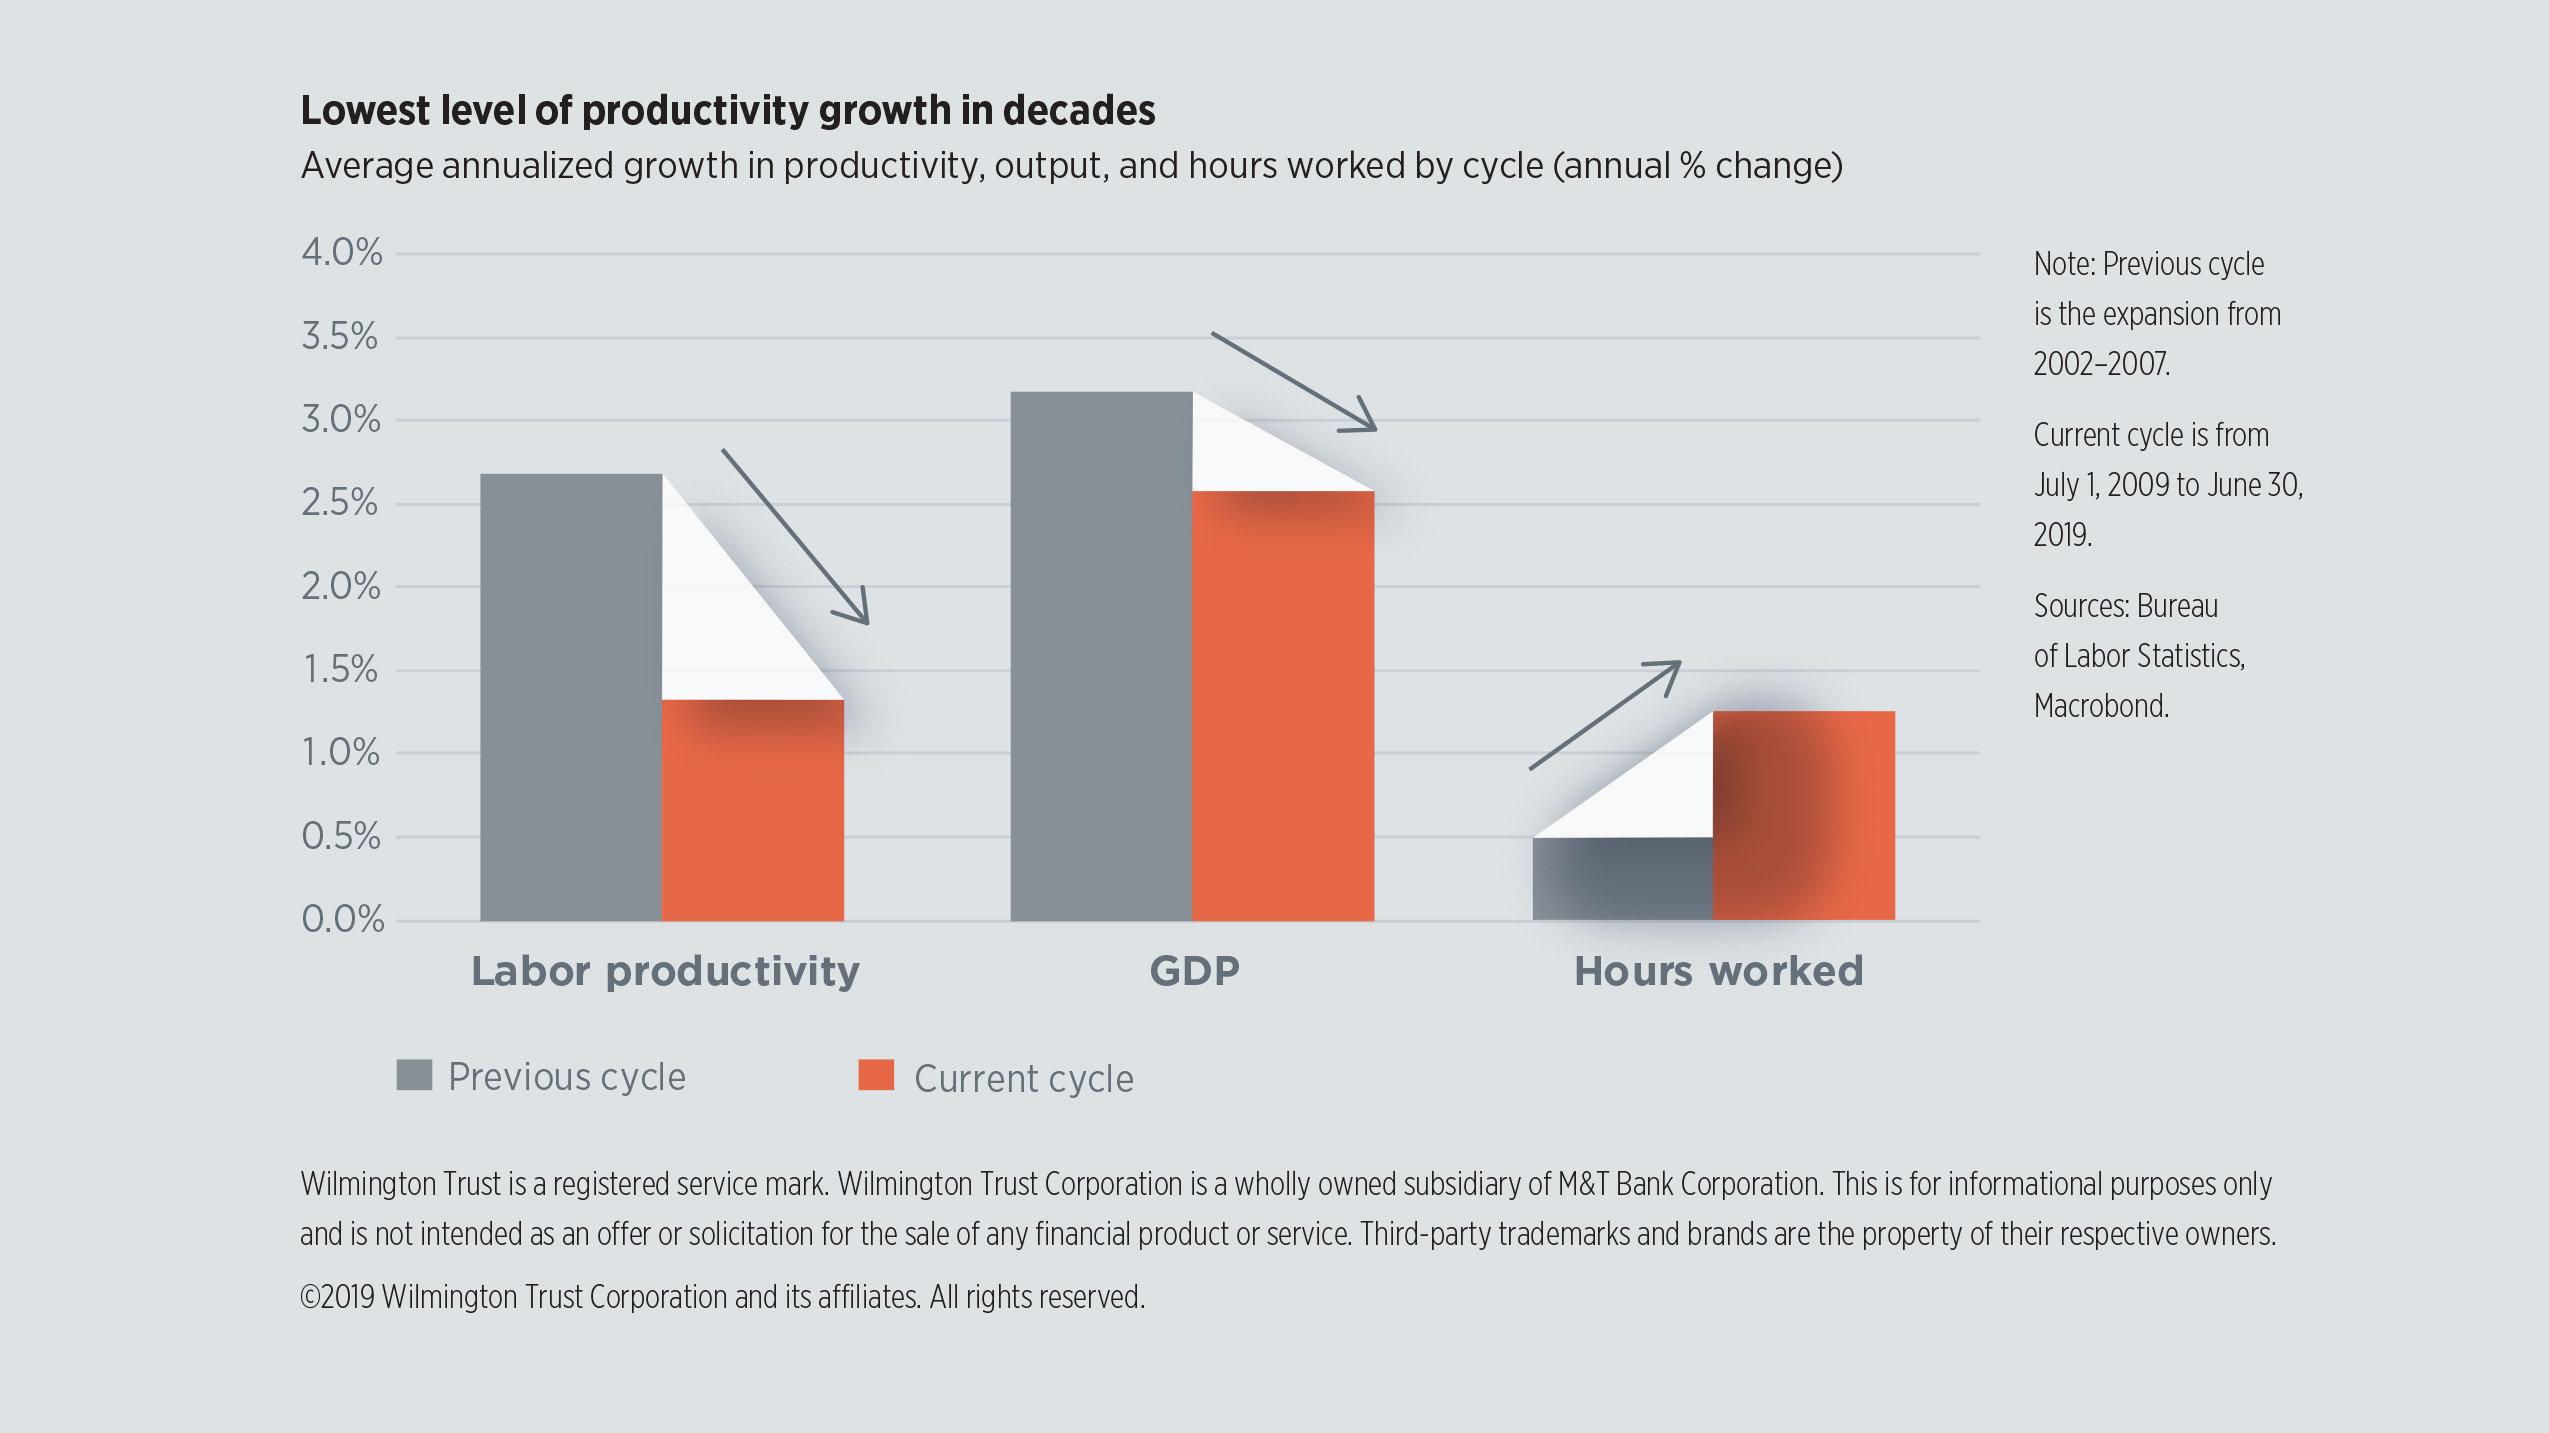 Lowest level of productivity growth in decades